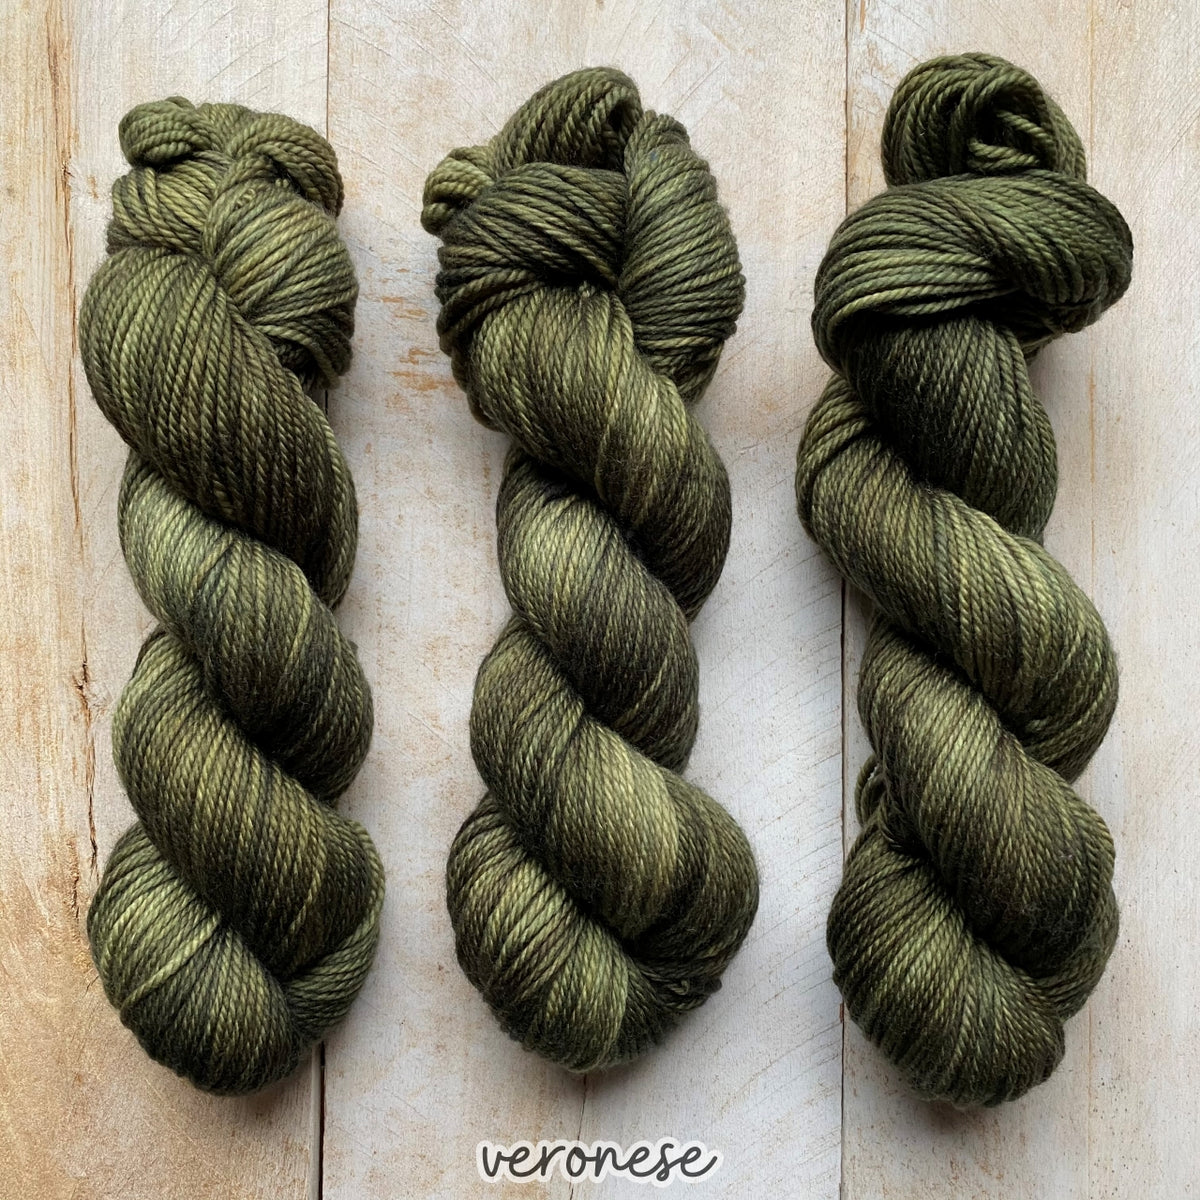 VERONESE by Louise Robert Design | MERINO WORSTED hand-dyed Variegated yarn